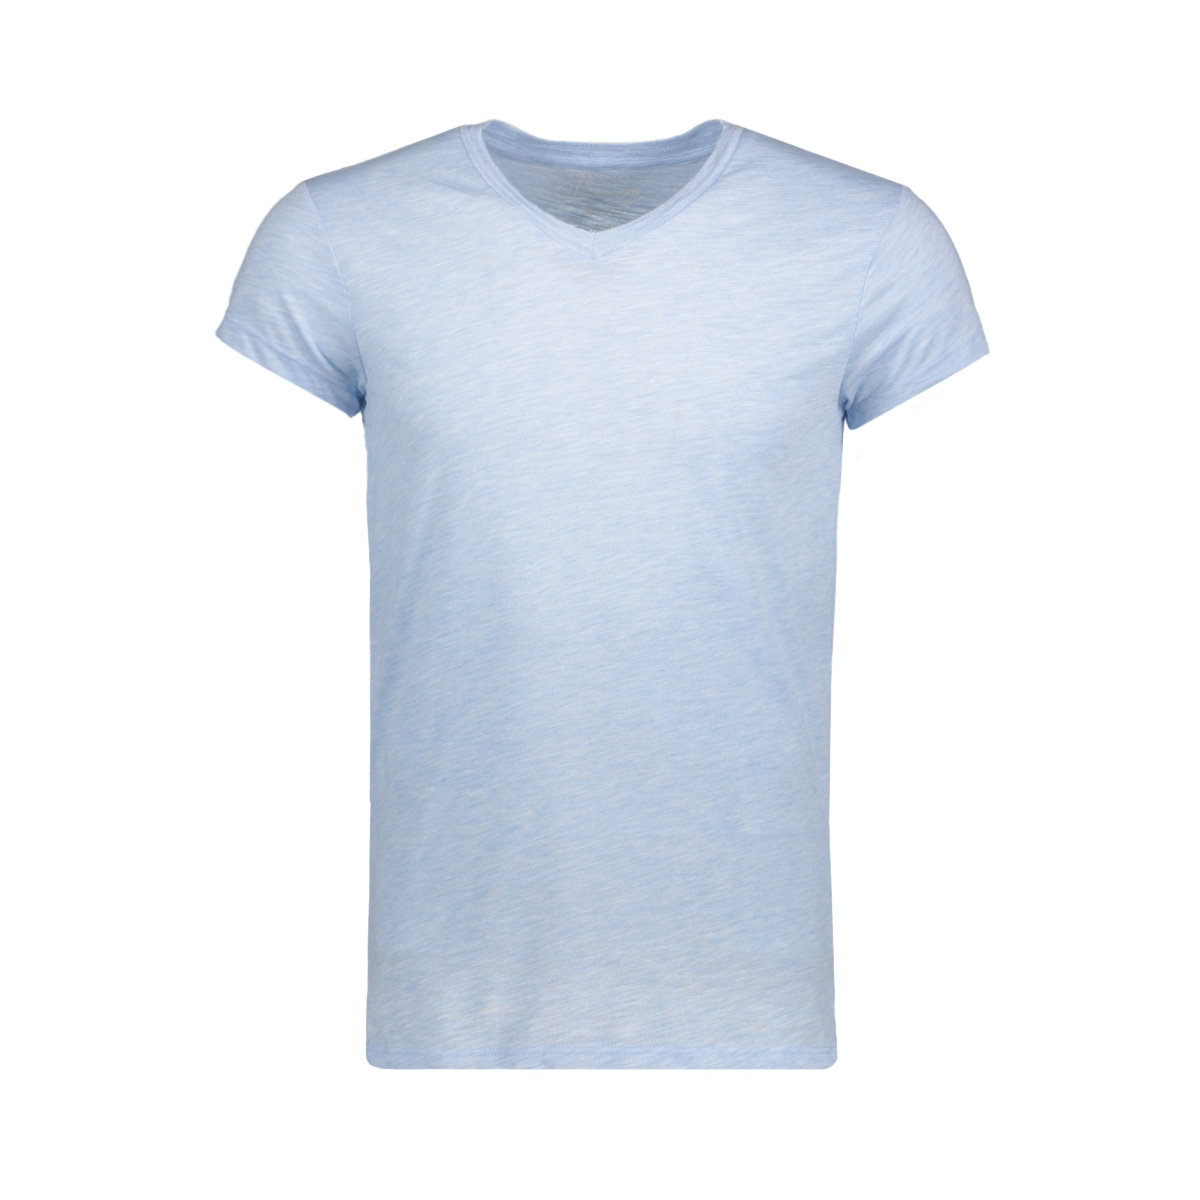 jprmust tee ss v neck exp 12130936 jack & jones t-shirt chambray blue/slim fit